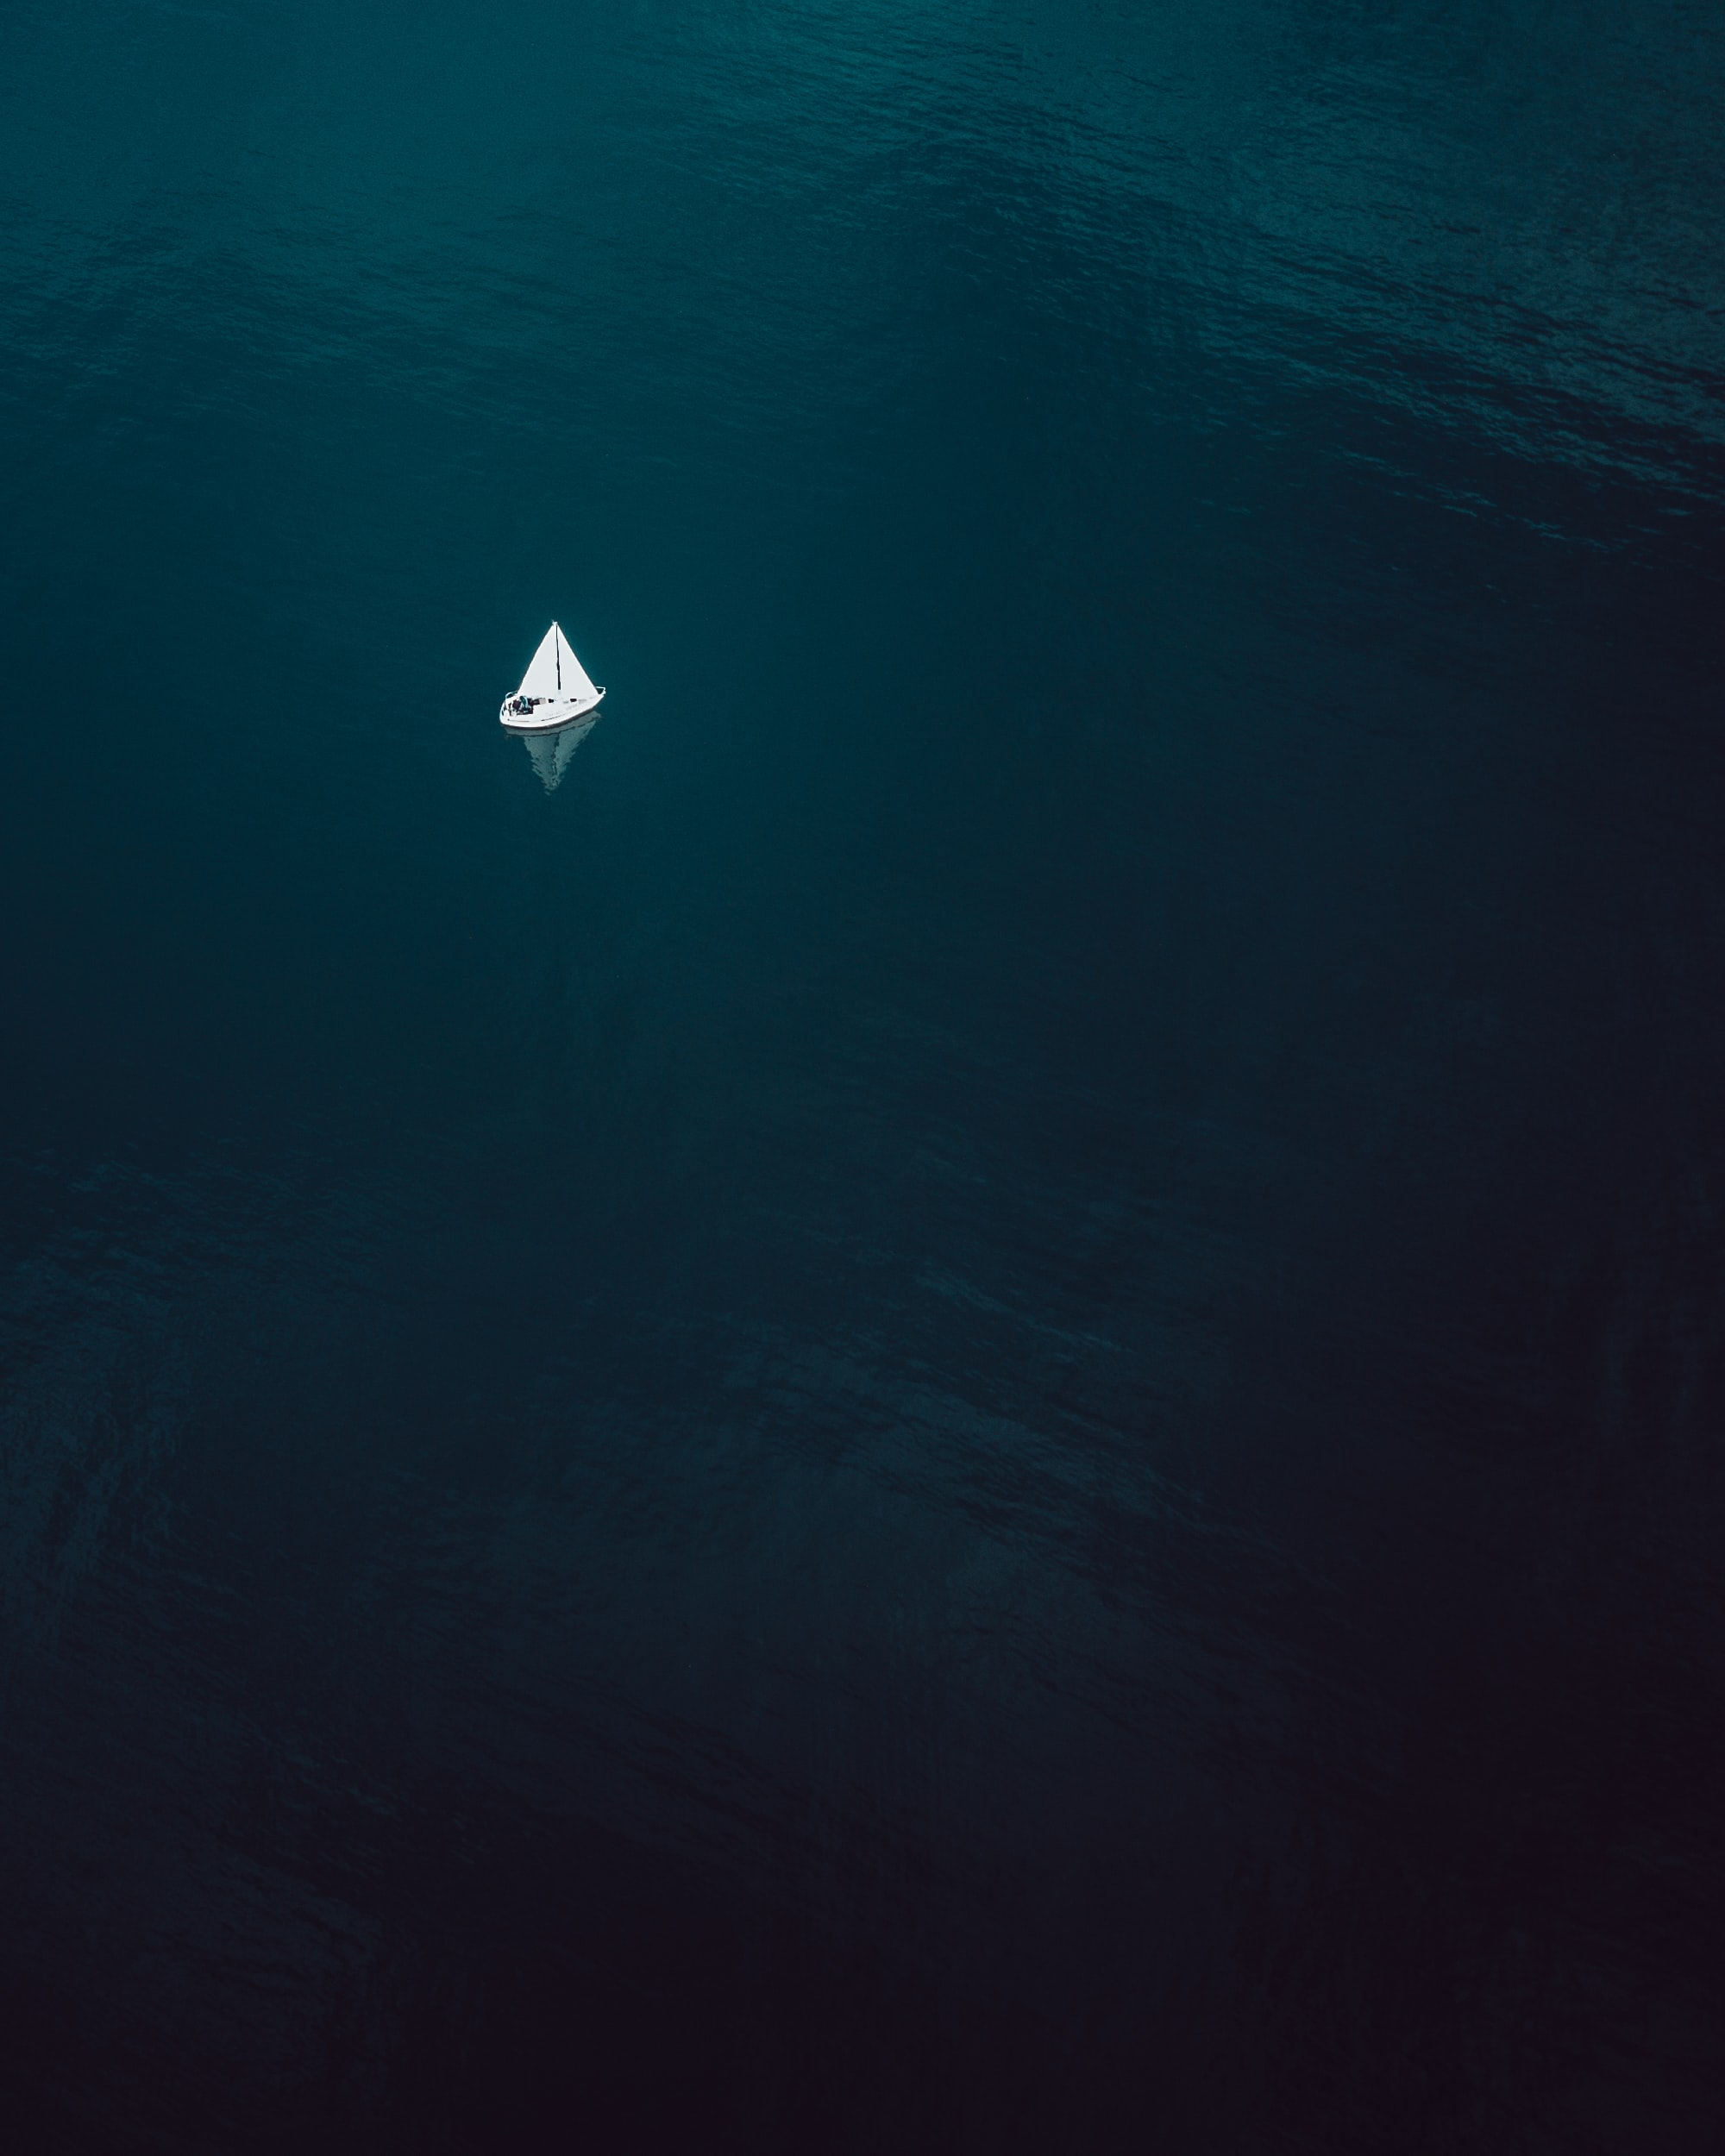 aerial photography of sailboat sailing on water body